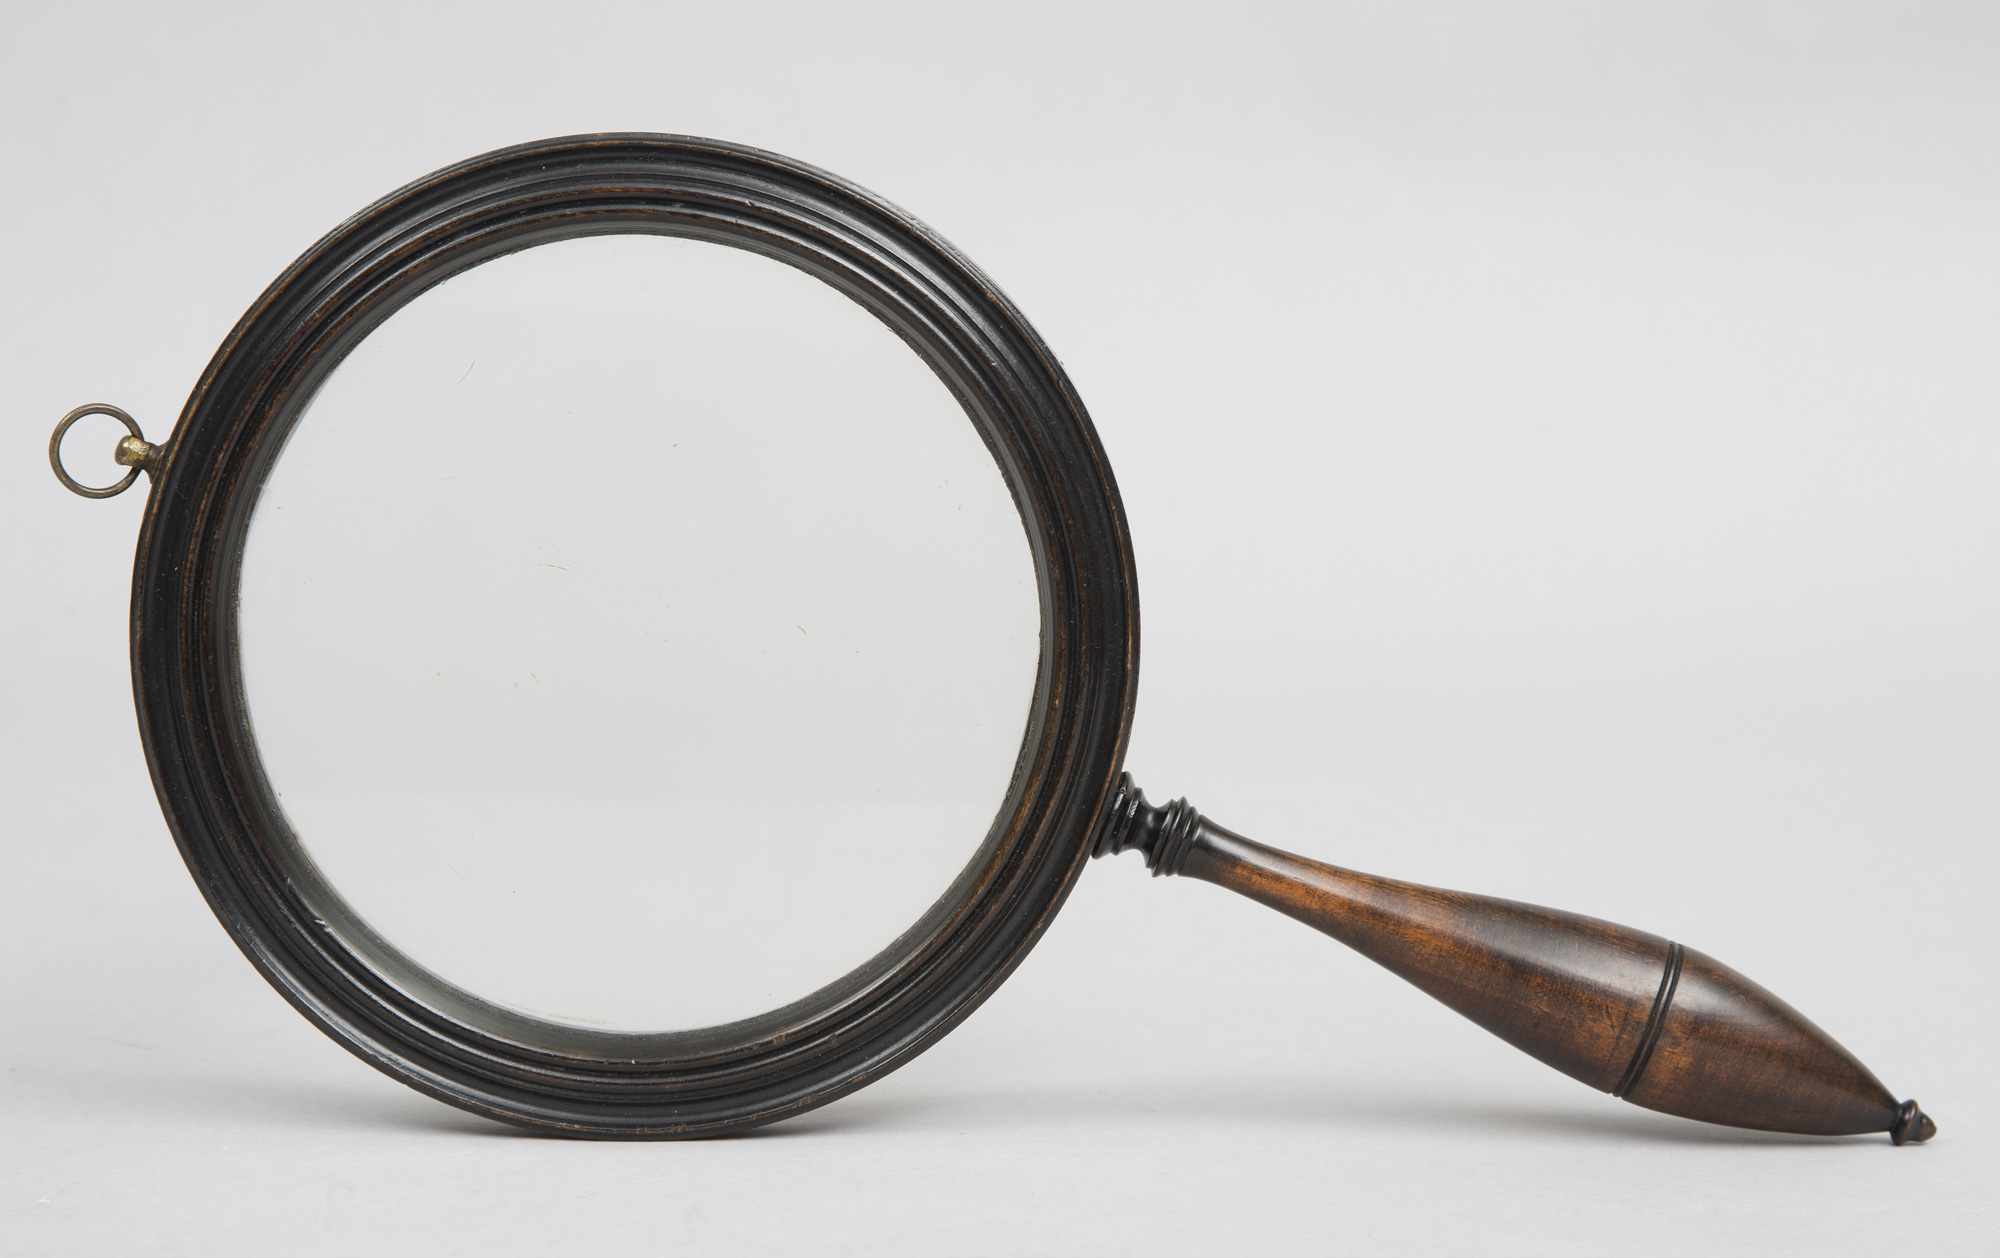 Antique Treen Gallery Magnifying Glass, Circa 1790